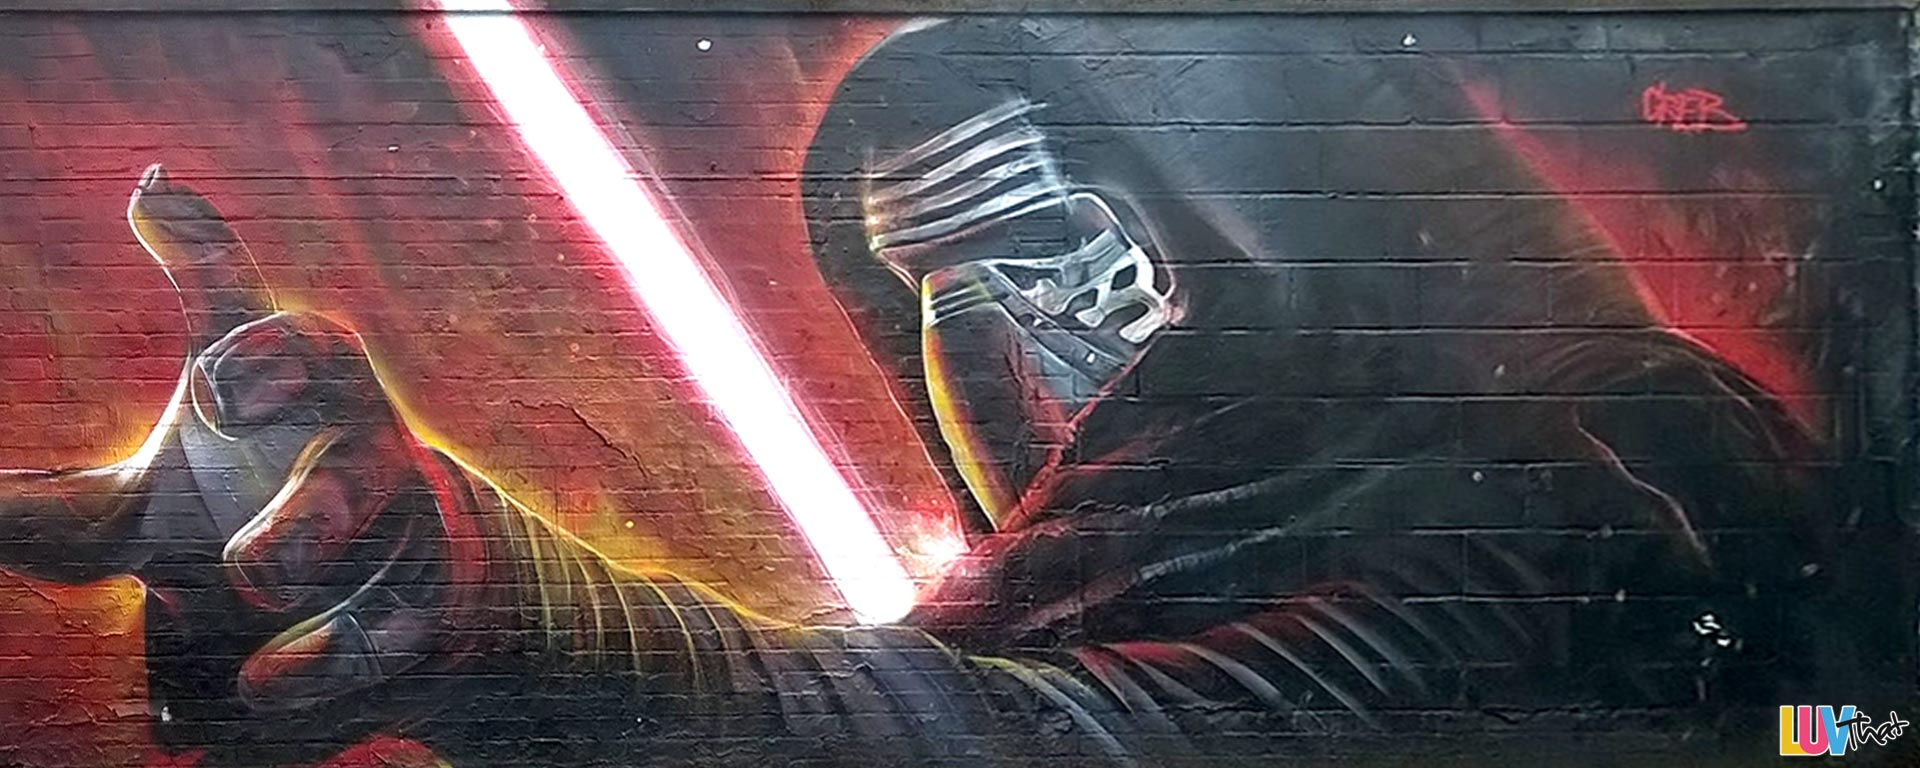 featured Perspective adjusted starwars Kylo-Ren mural